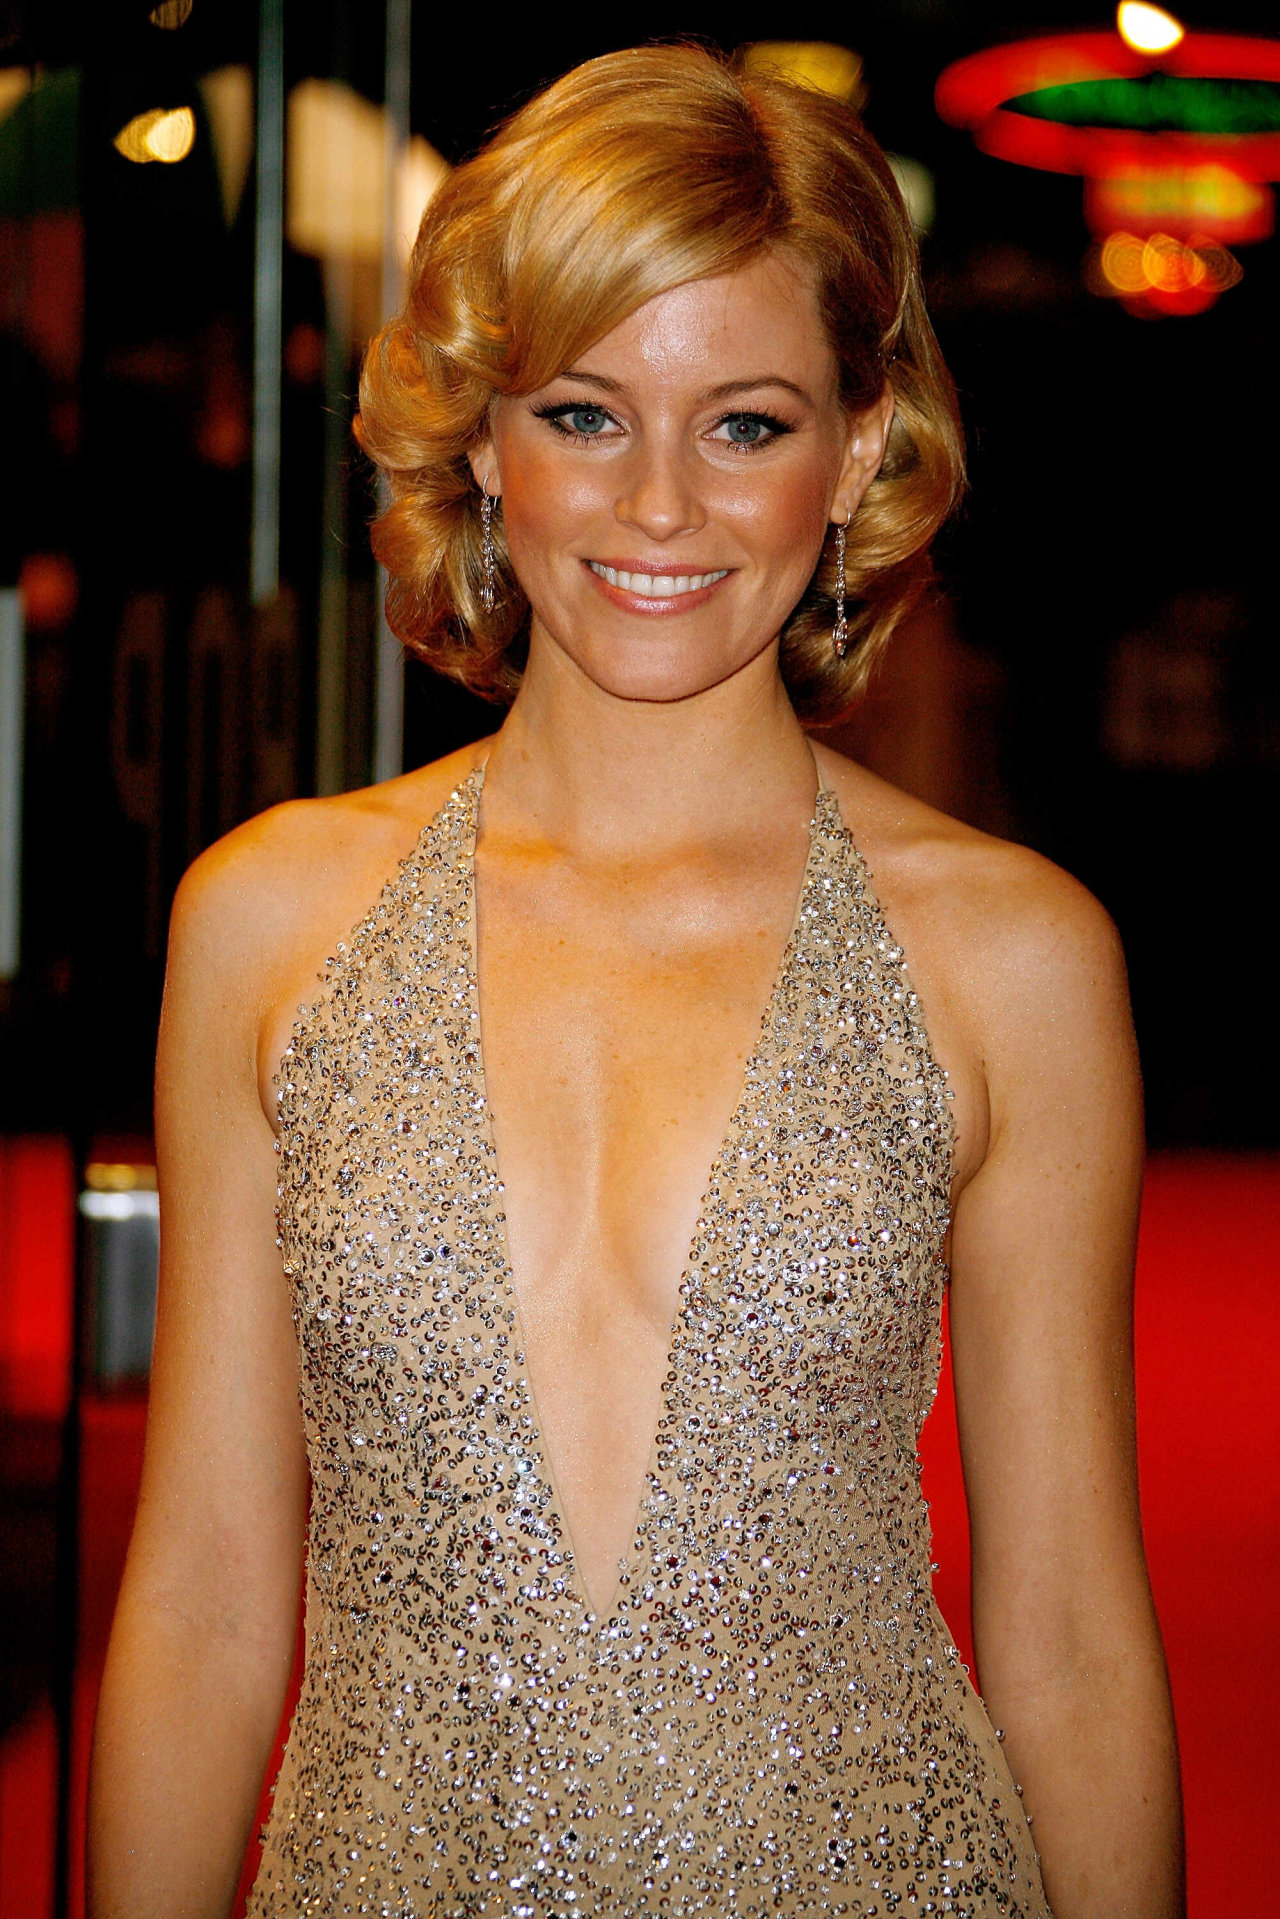 Elizabeth Banks Wallpapers High Resolution and Quality